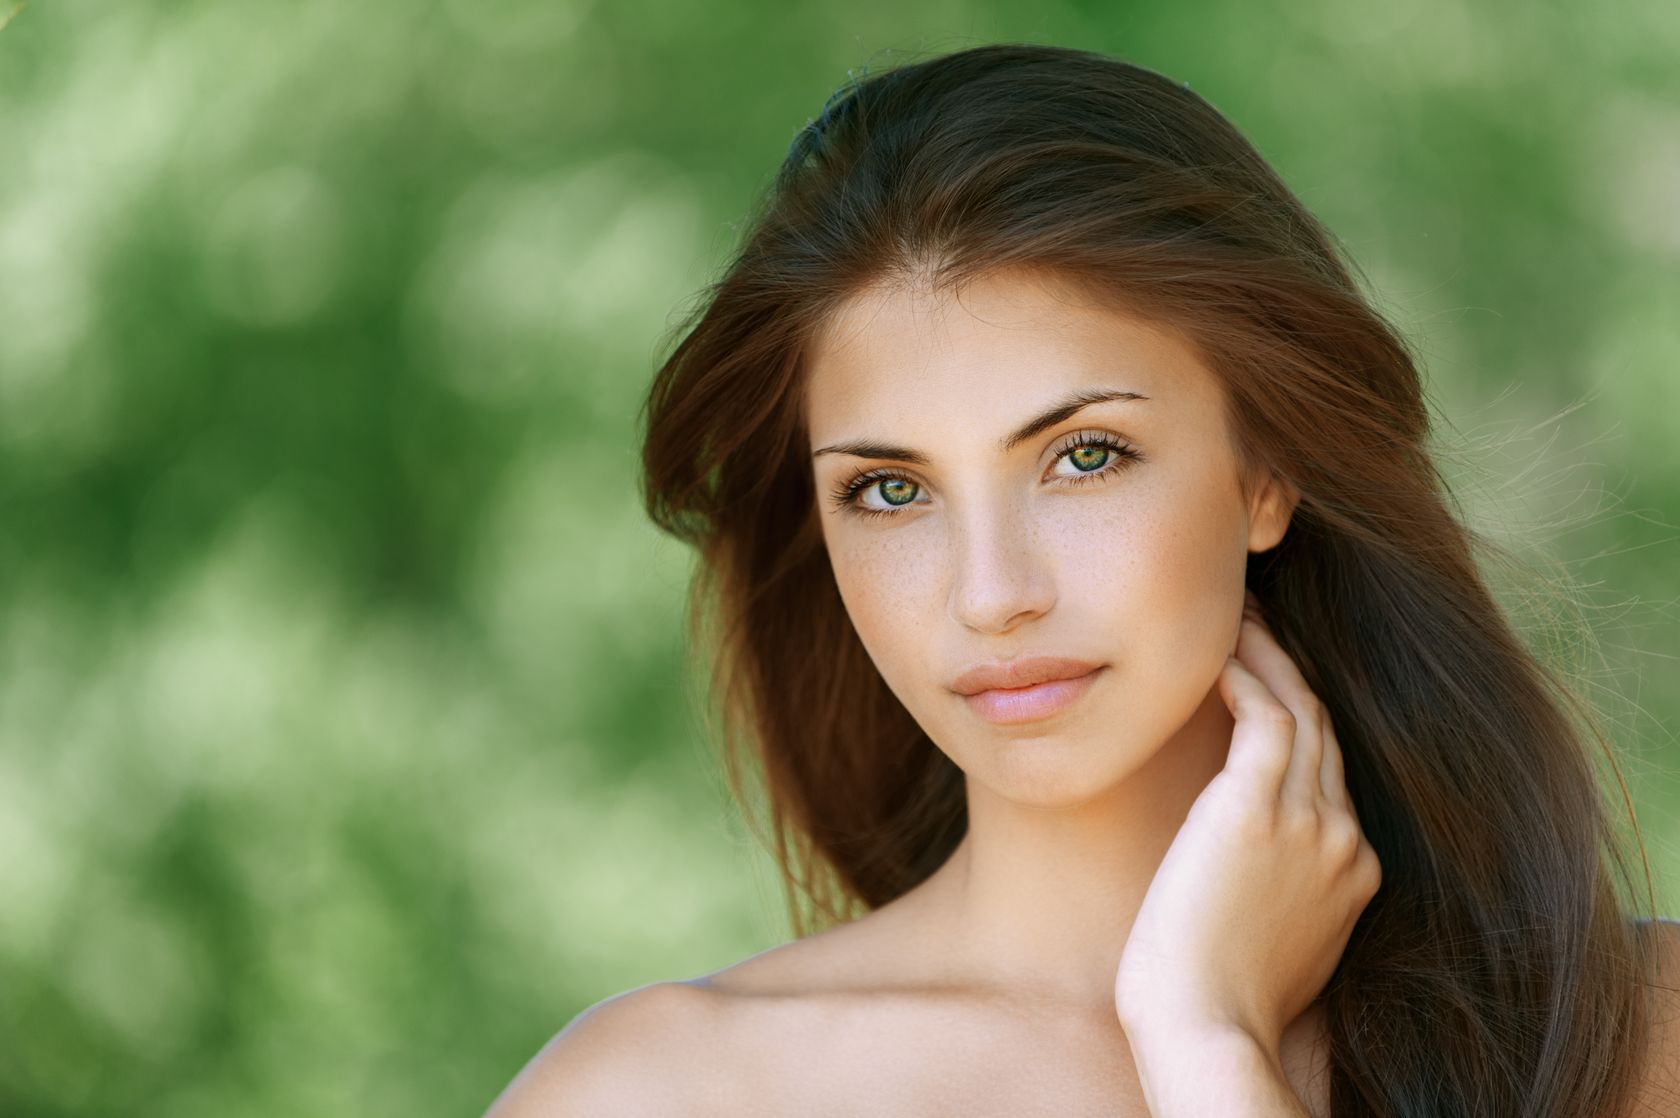 NJ rhinoplasty